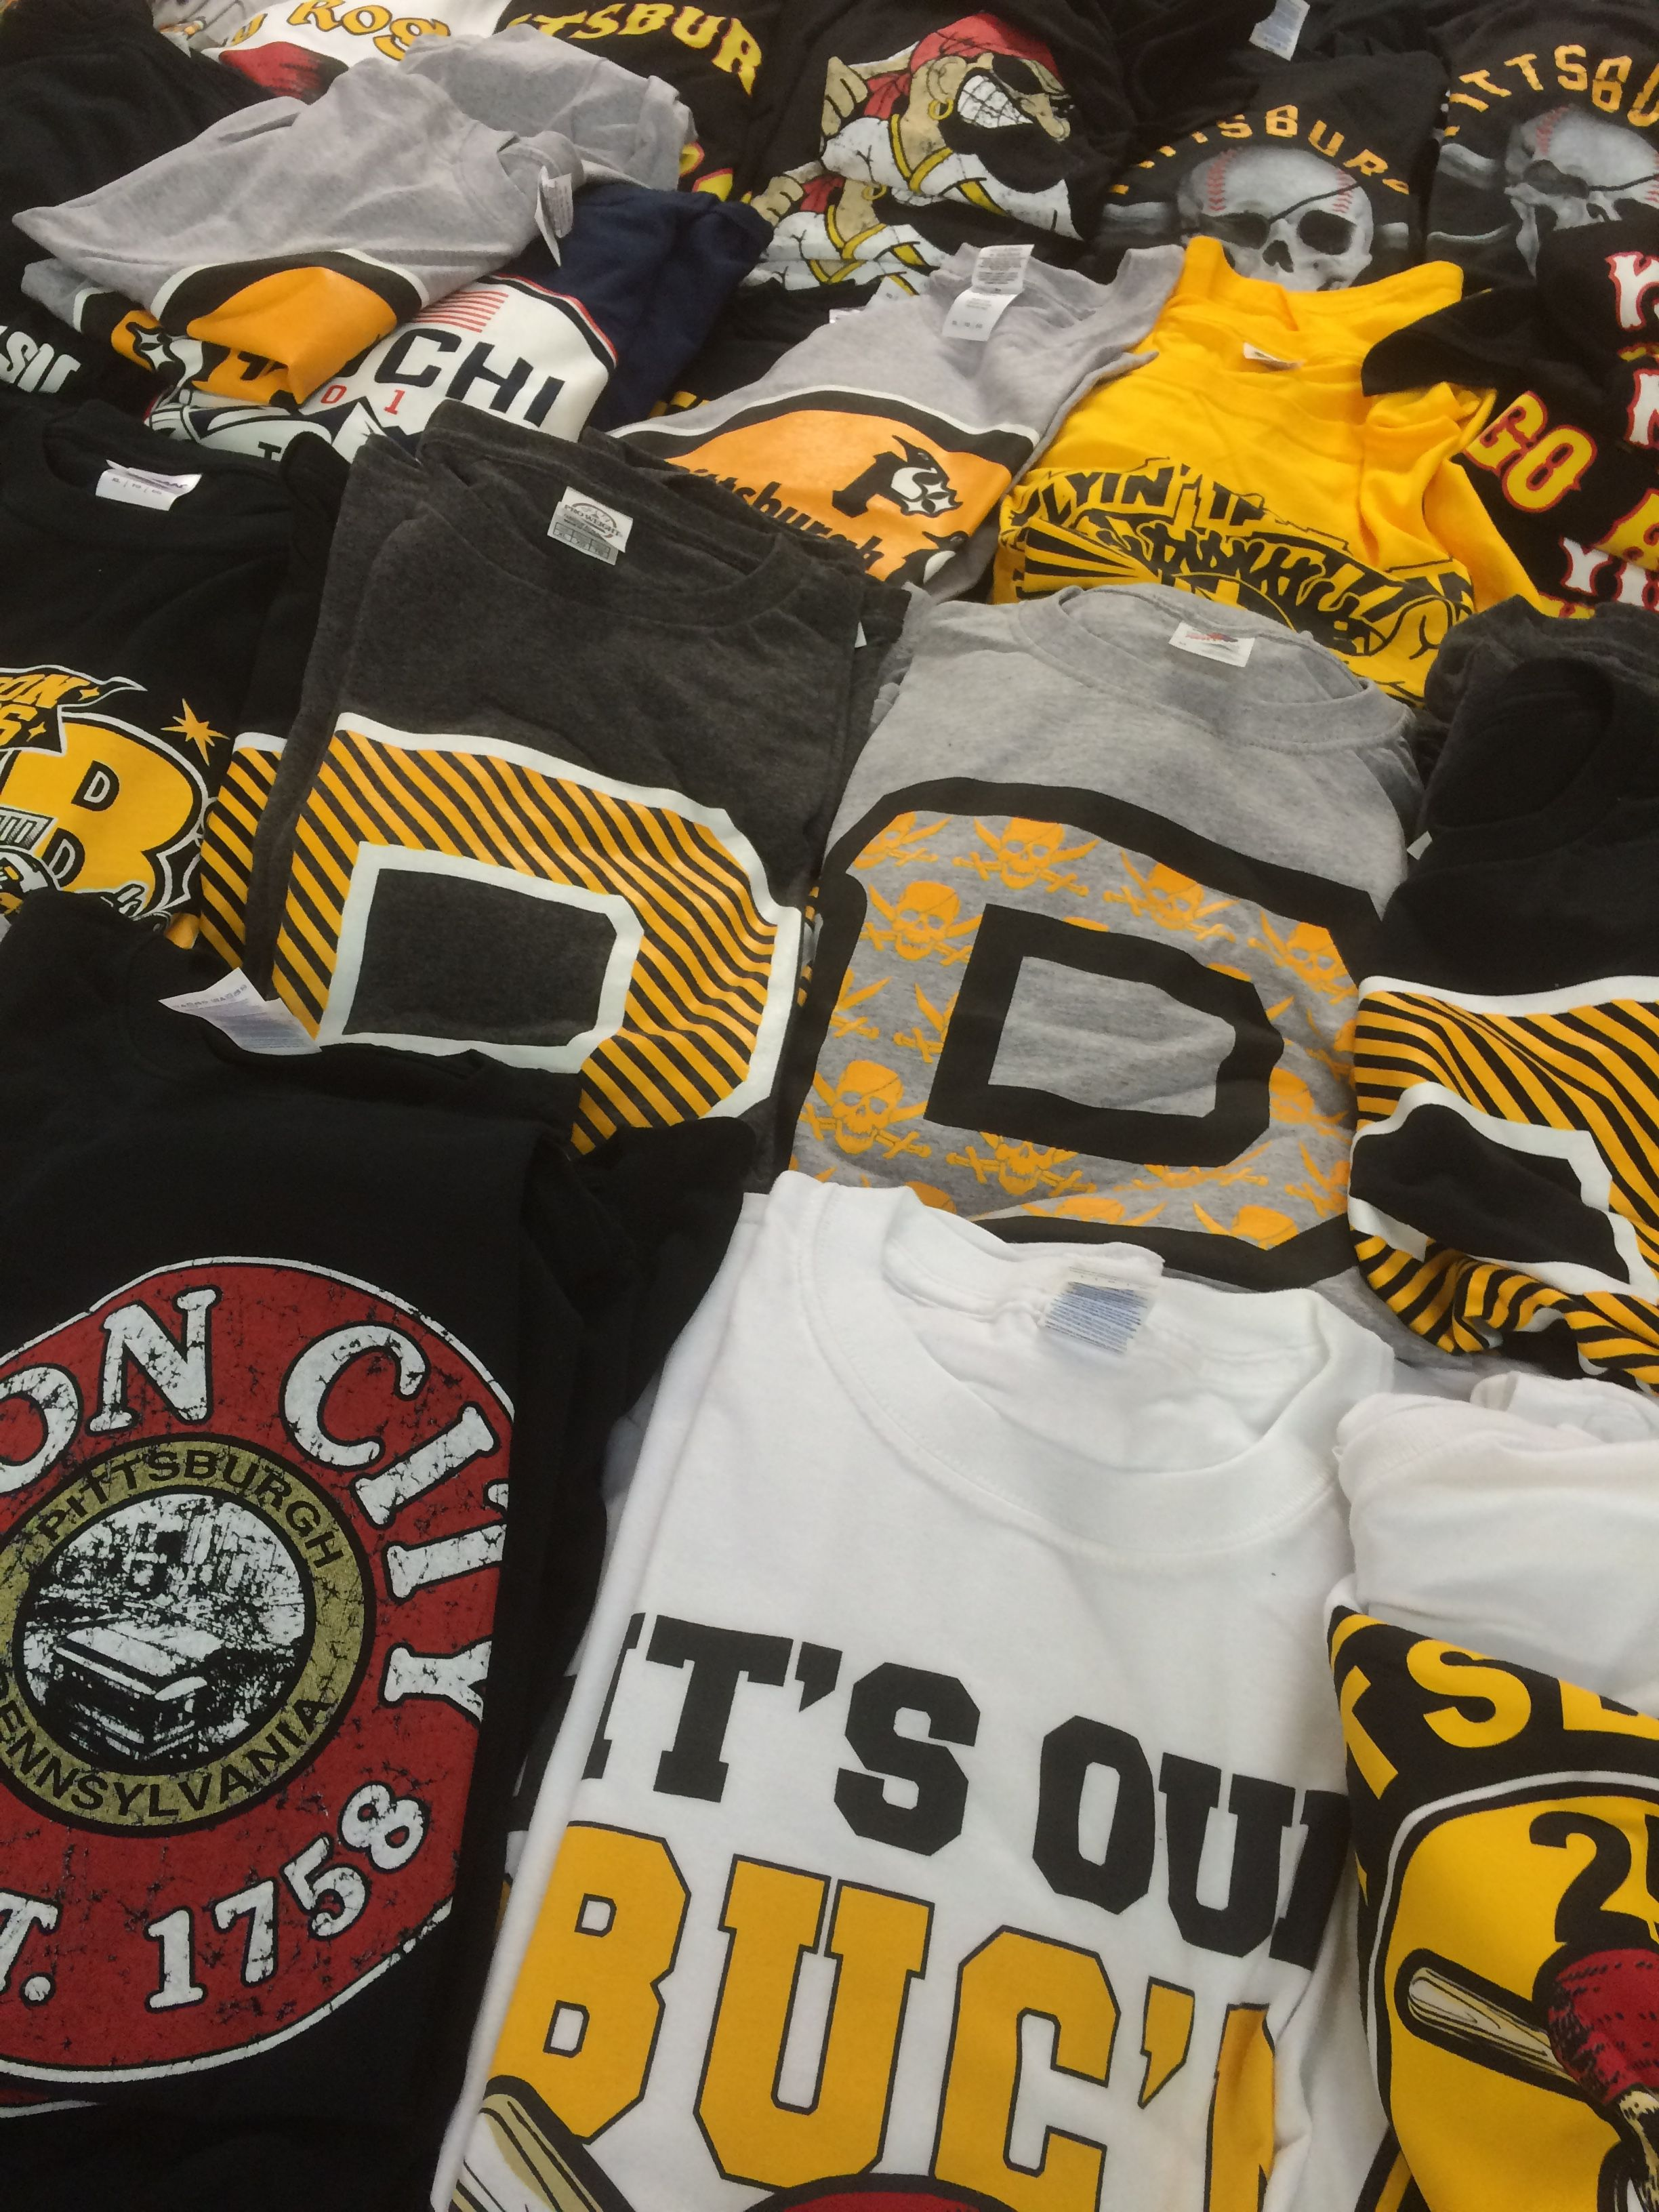 No shortage of sports merchandise in Pittsburgh's Strip District